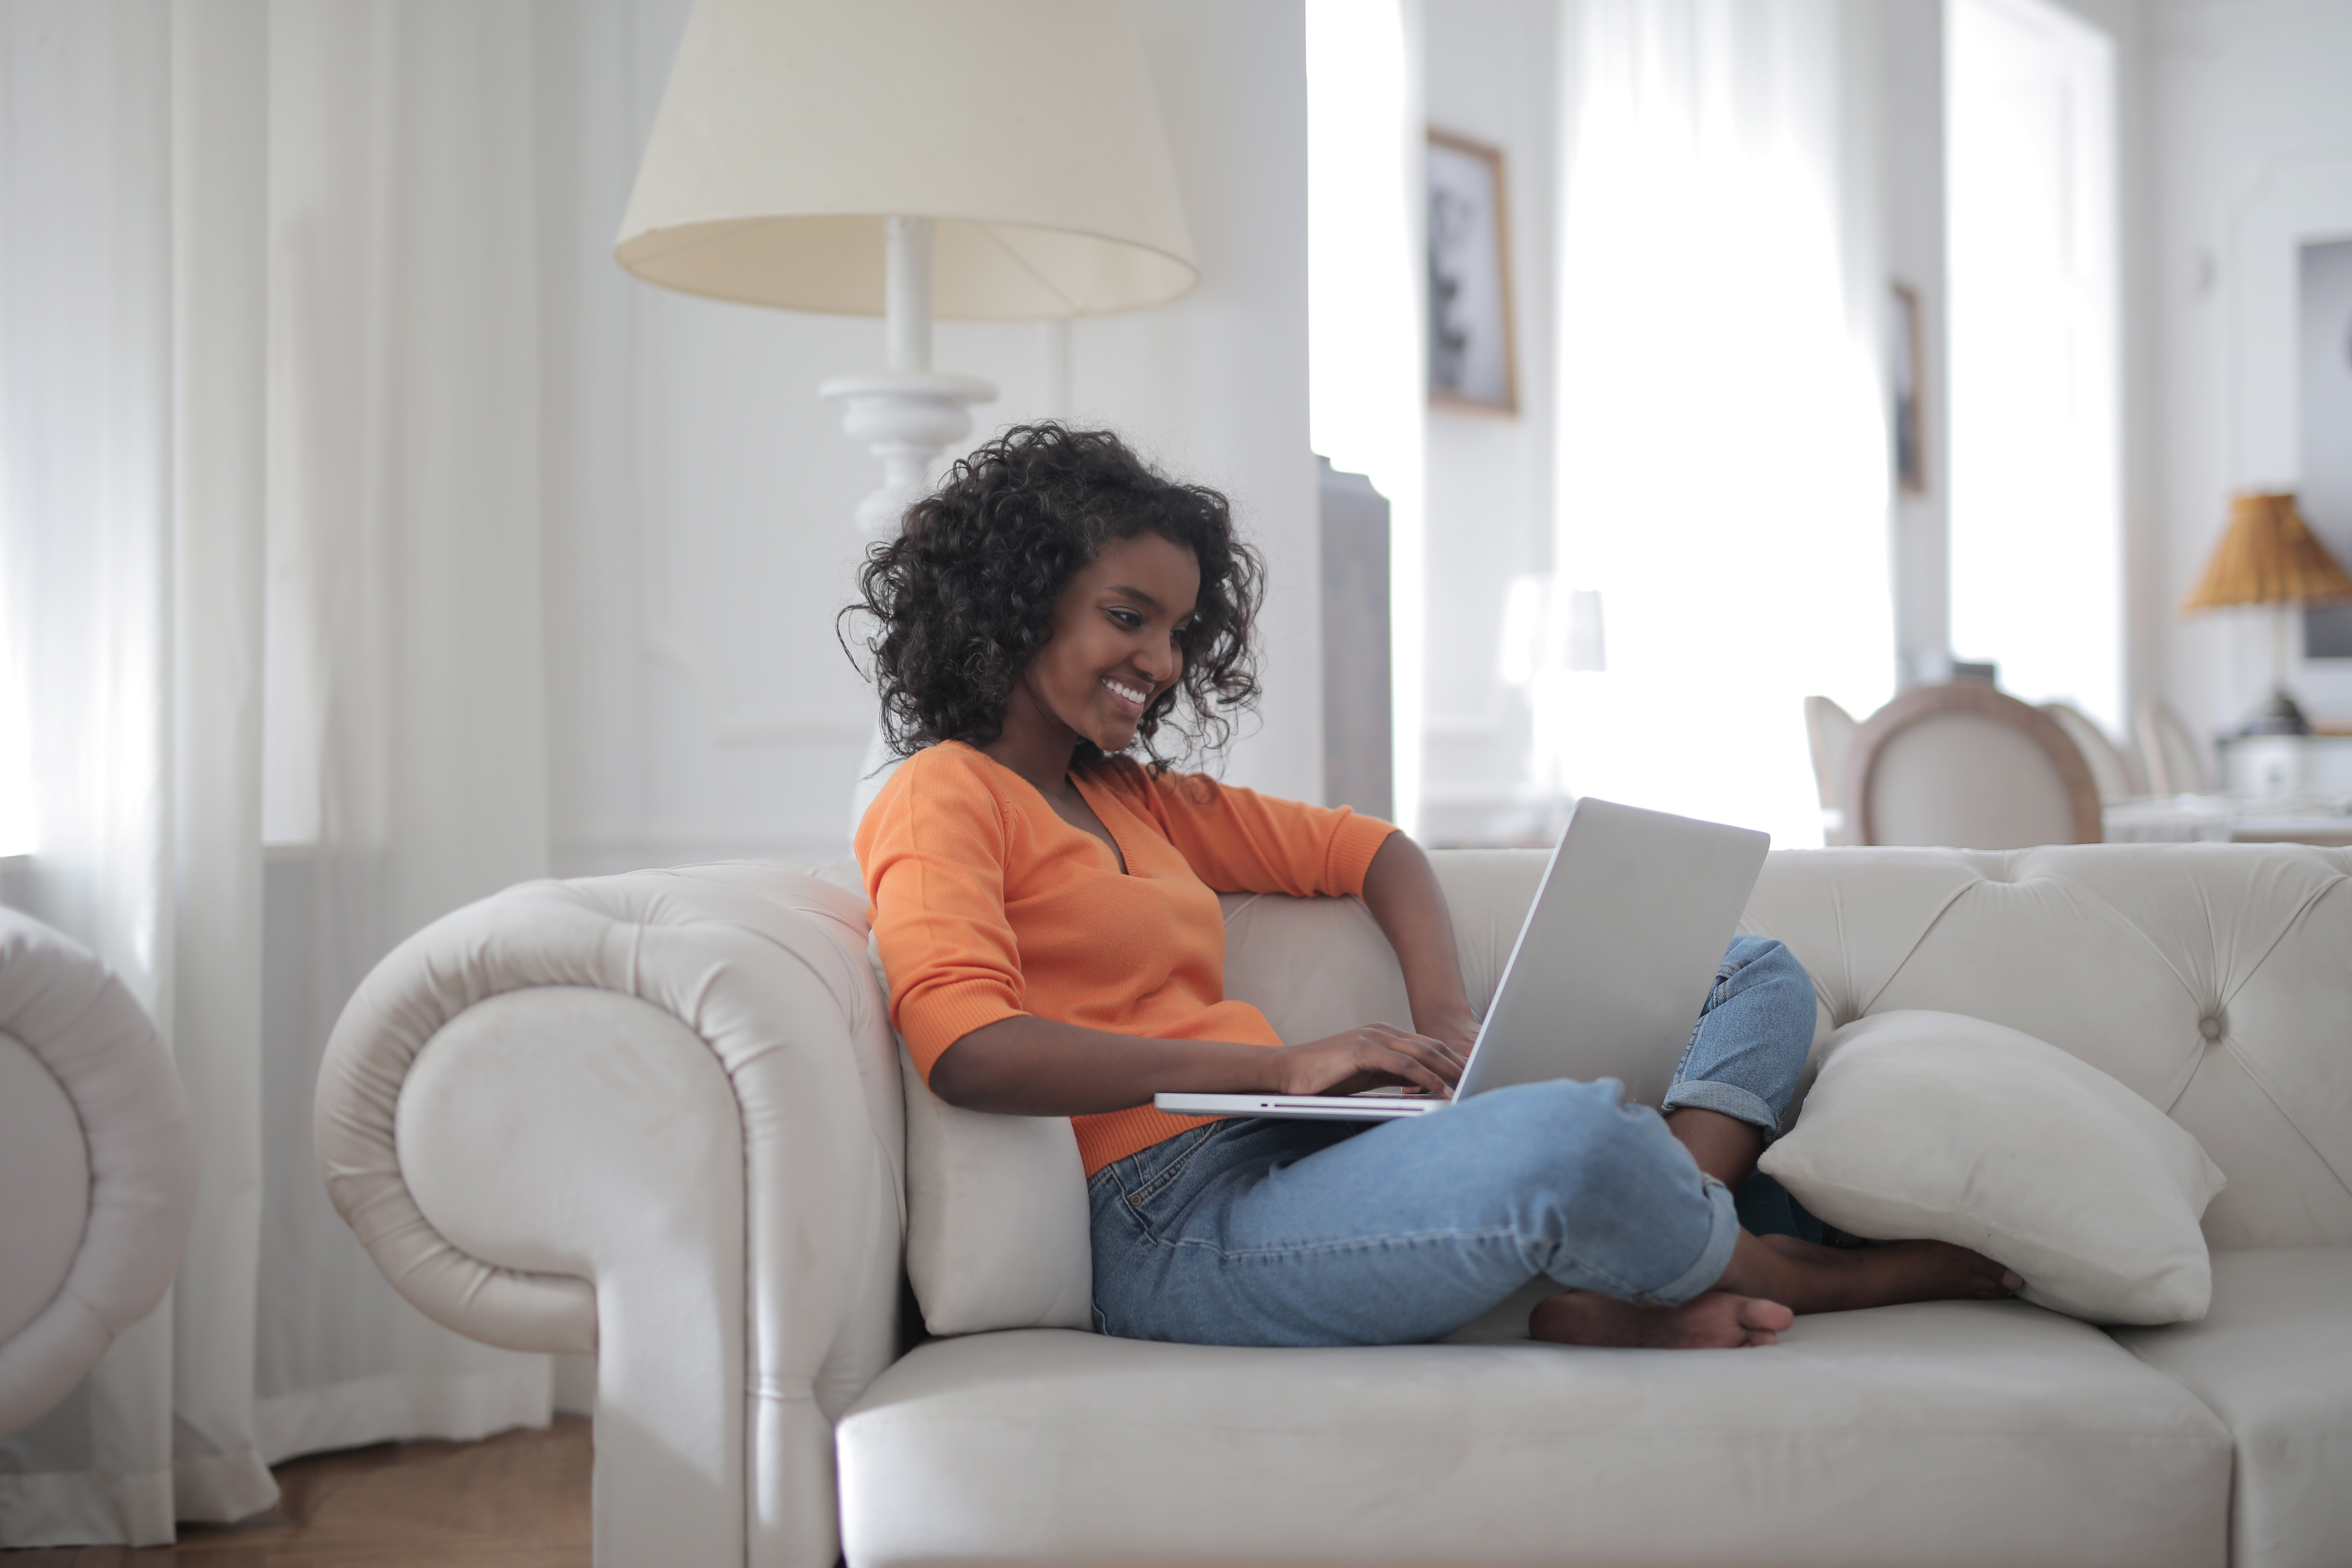 woman-sitting-on-white-couch-using-laptop-computer-3960127.jpg